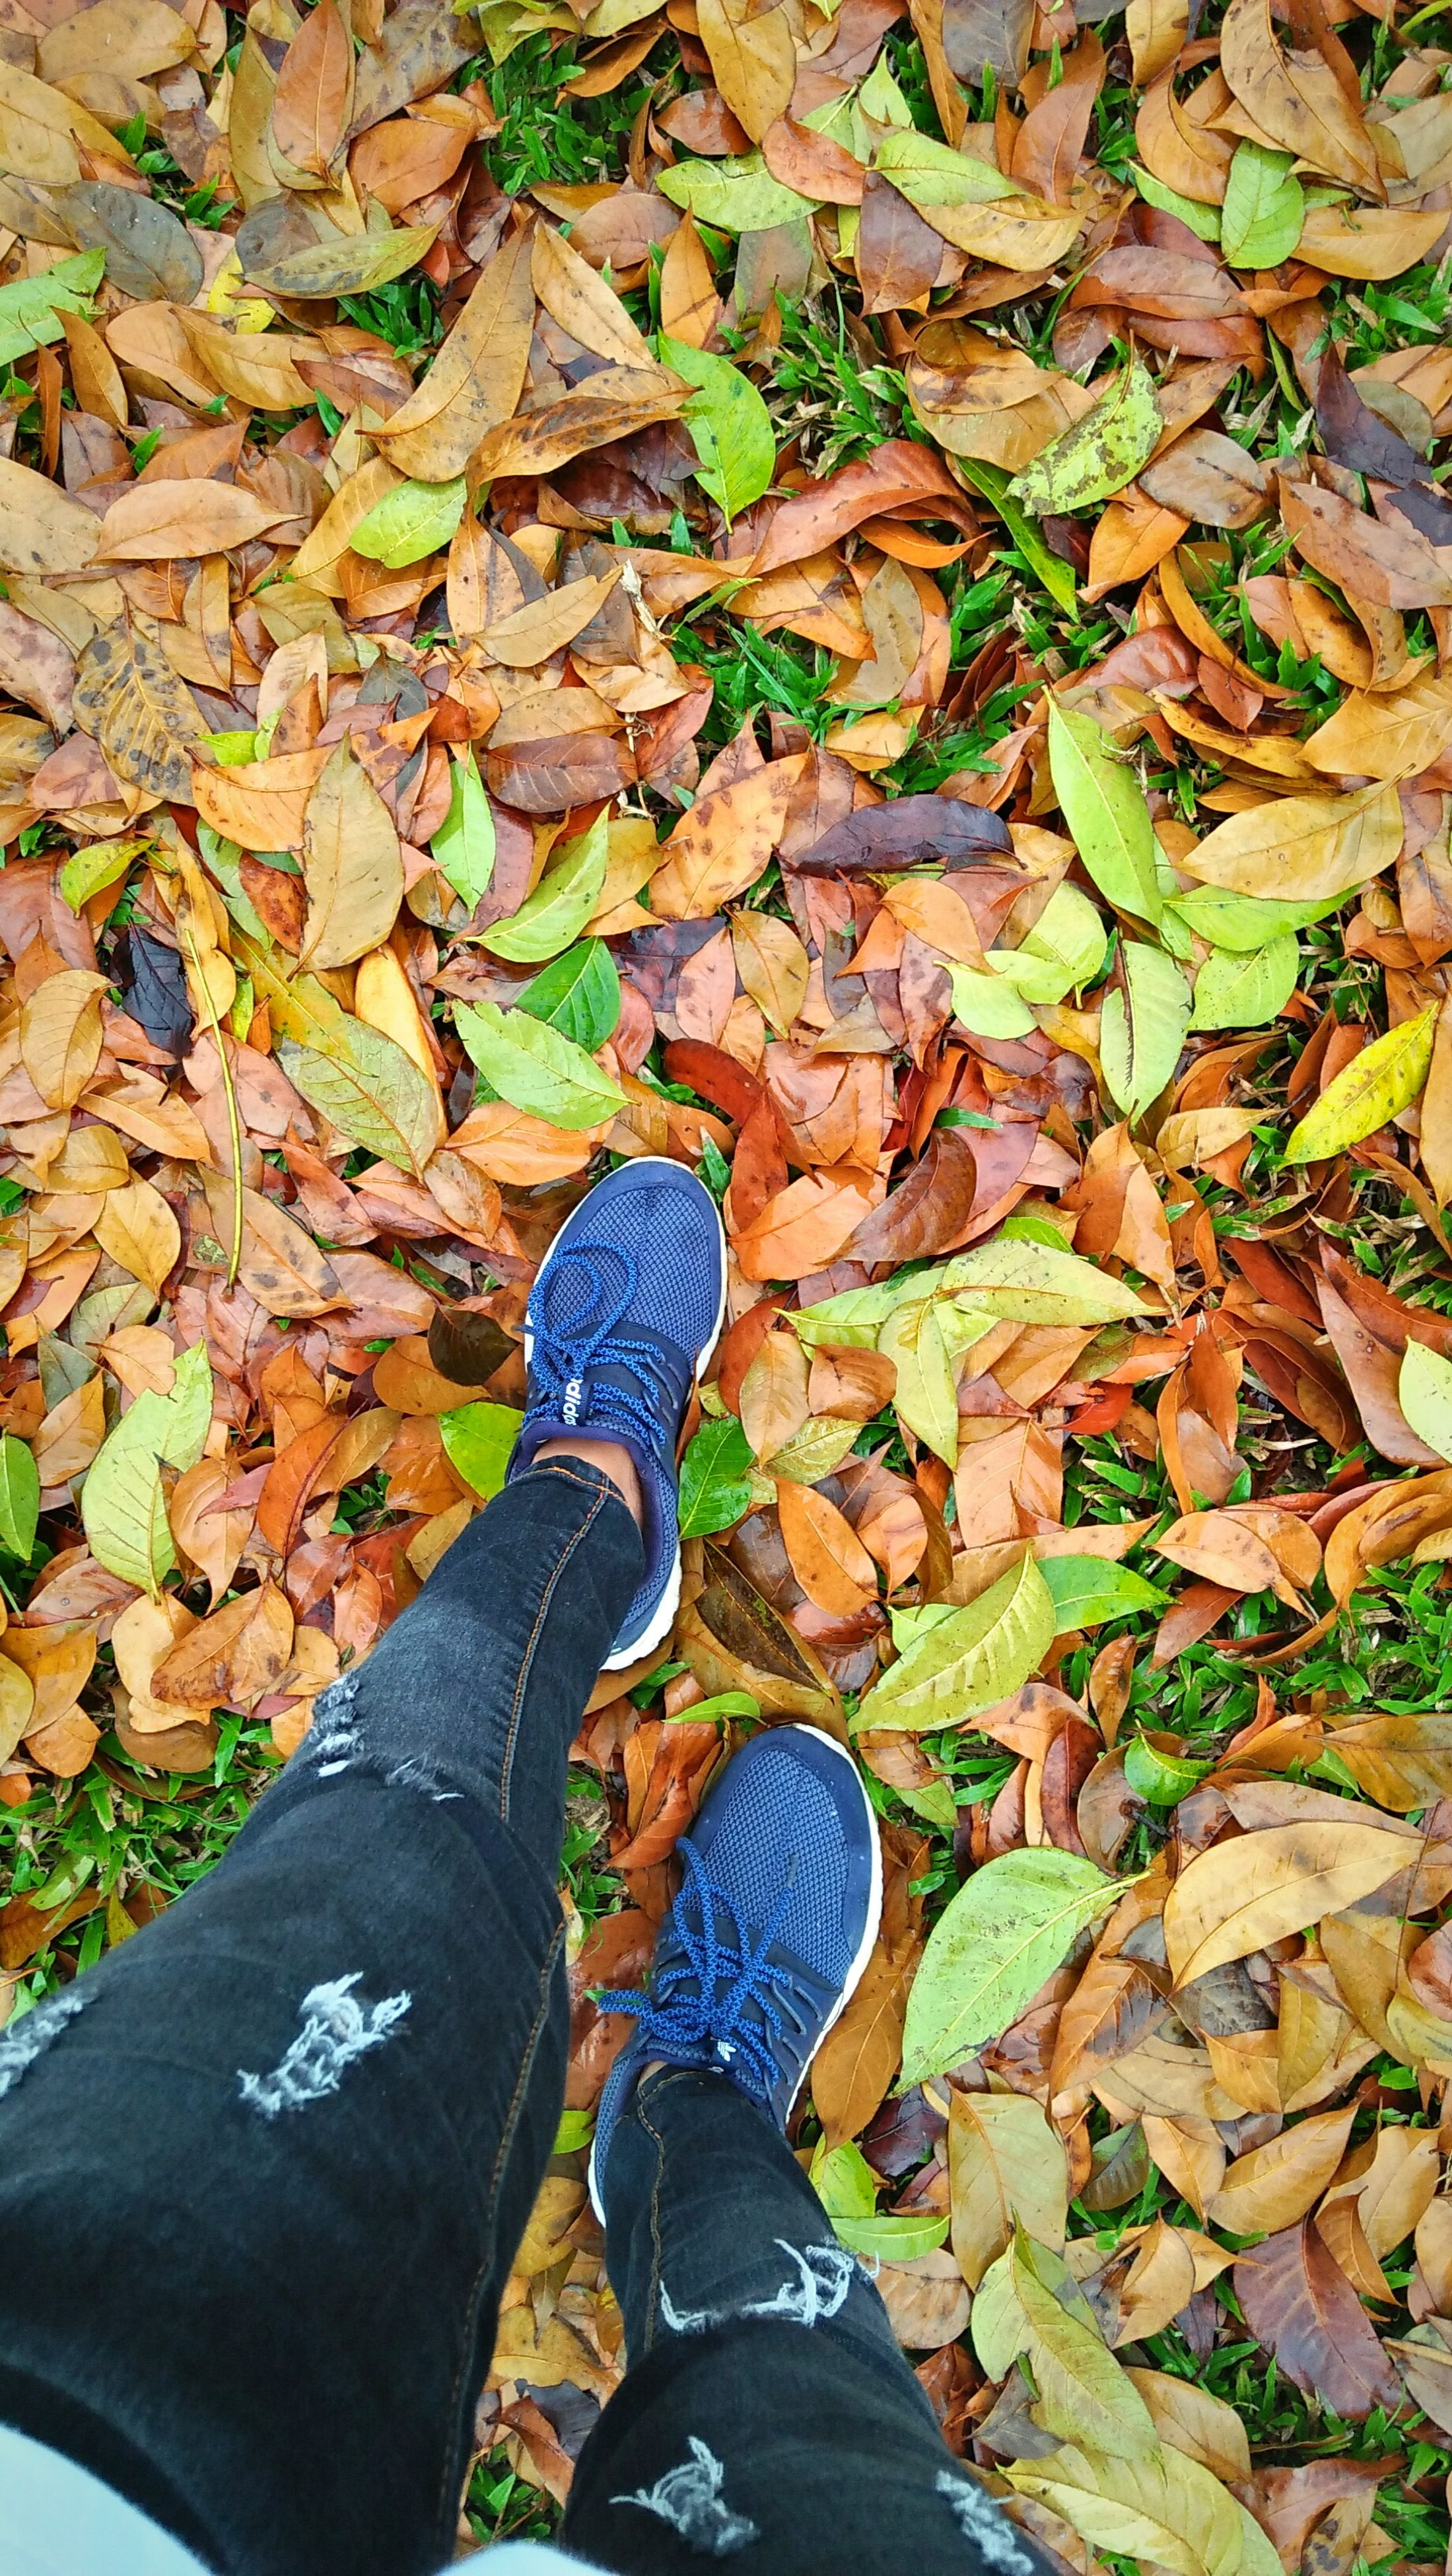 autumn, leaf, change, low section, shoe, human leg, one person, personal perspective, leaves, real people, high angle view, human body part, day, standing, fallen, outdoors, nature, lifestyles, men, beauty in nature, close-up, adult, people